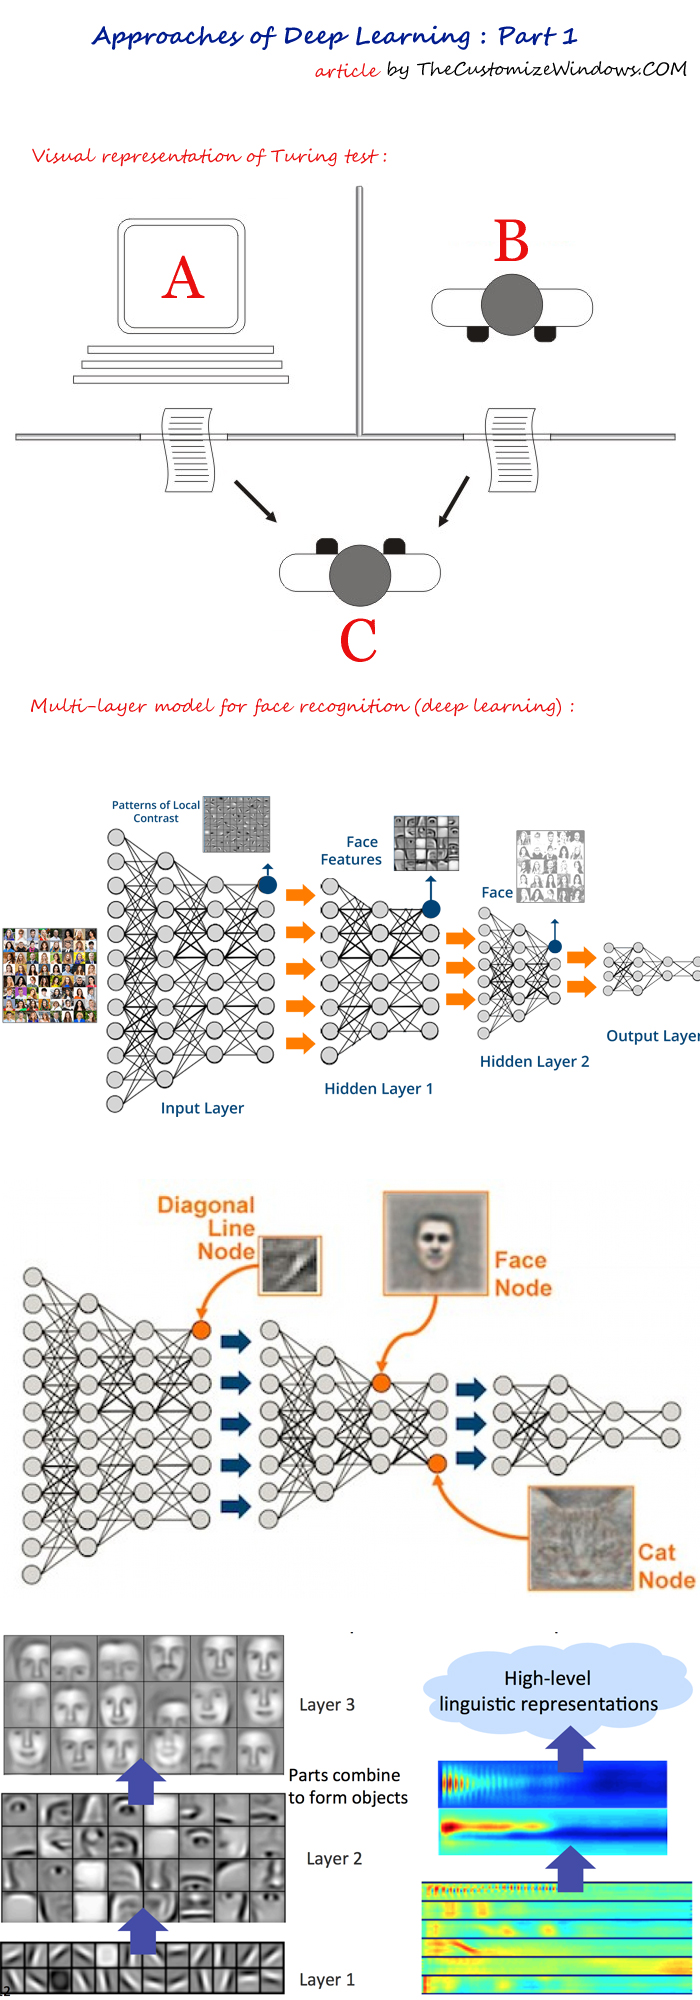 Approaches-of-Deep-Learning-Part-1